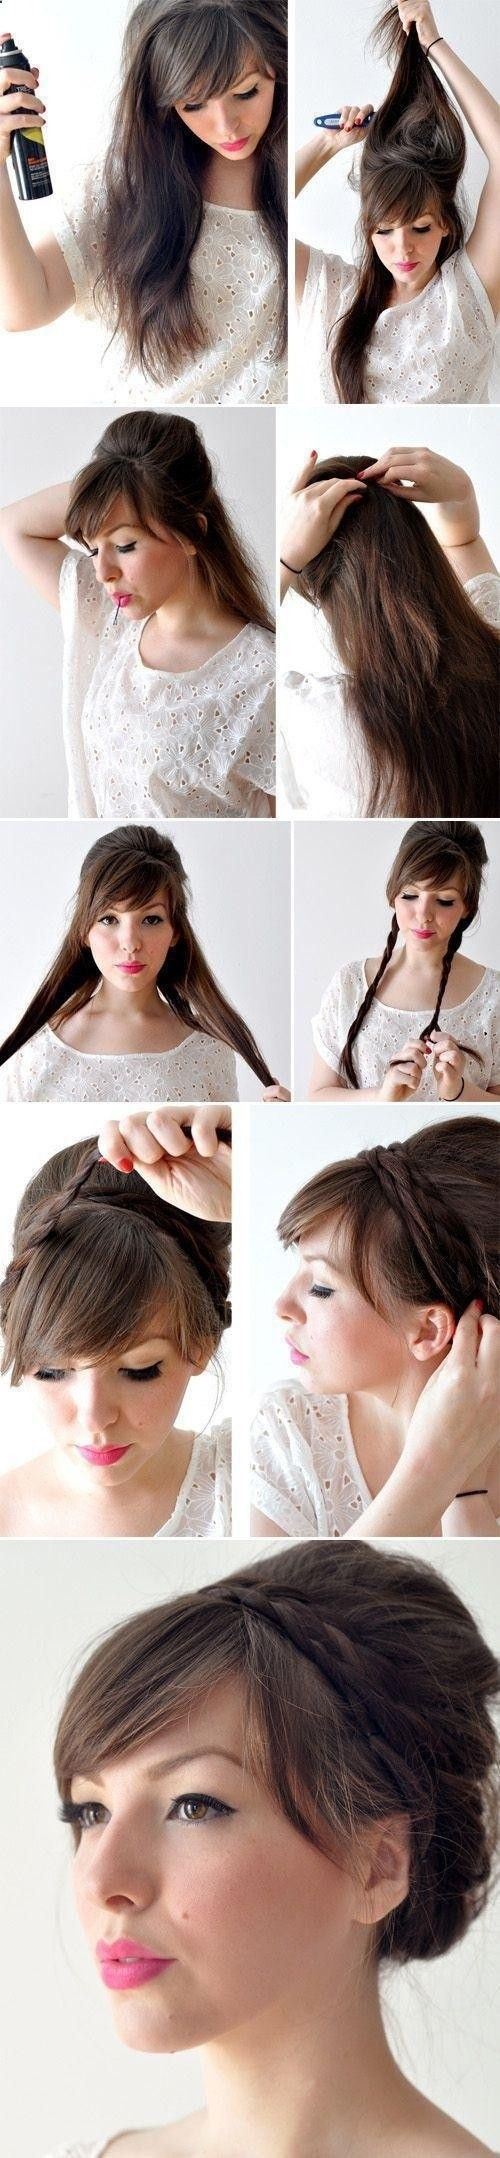 Braided updo with bangs. Love her bangs!                                                                                                                                                     More